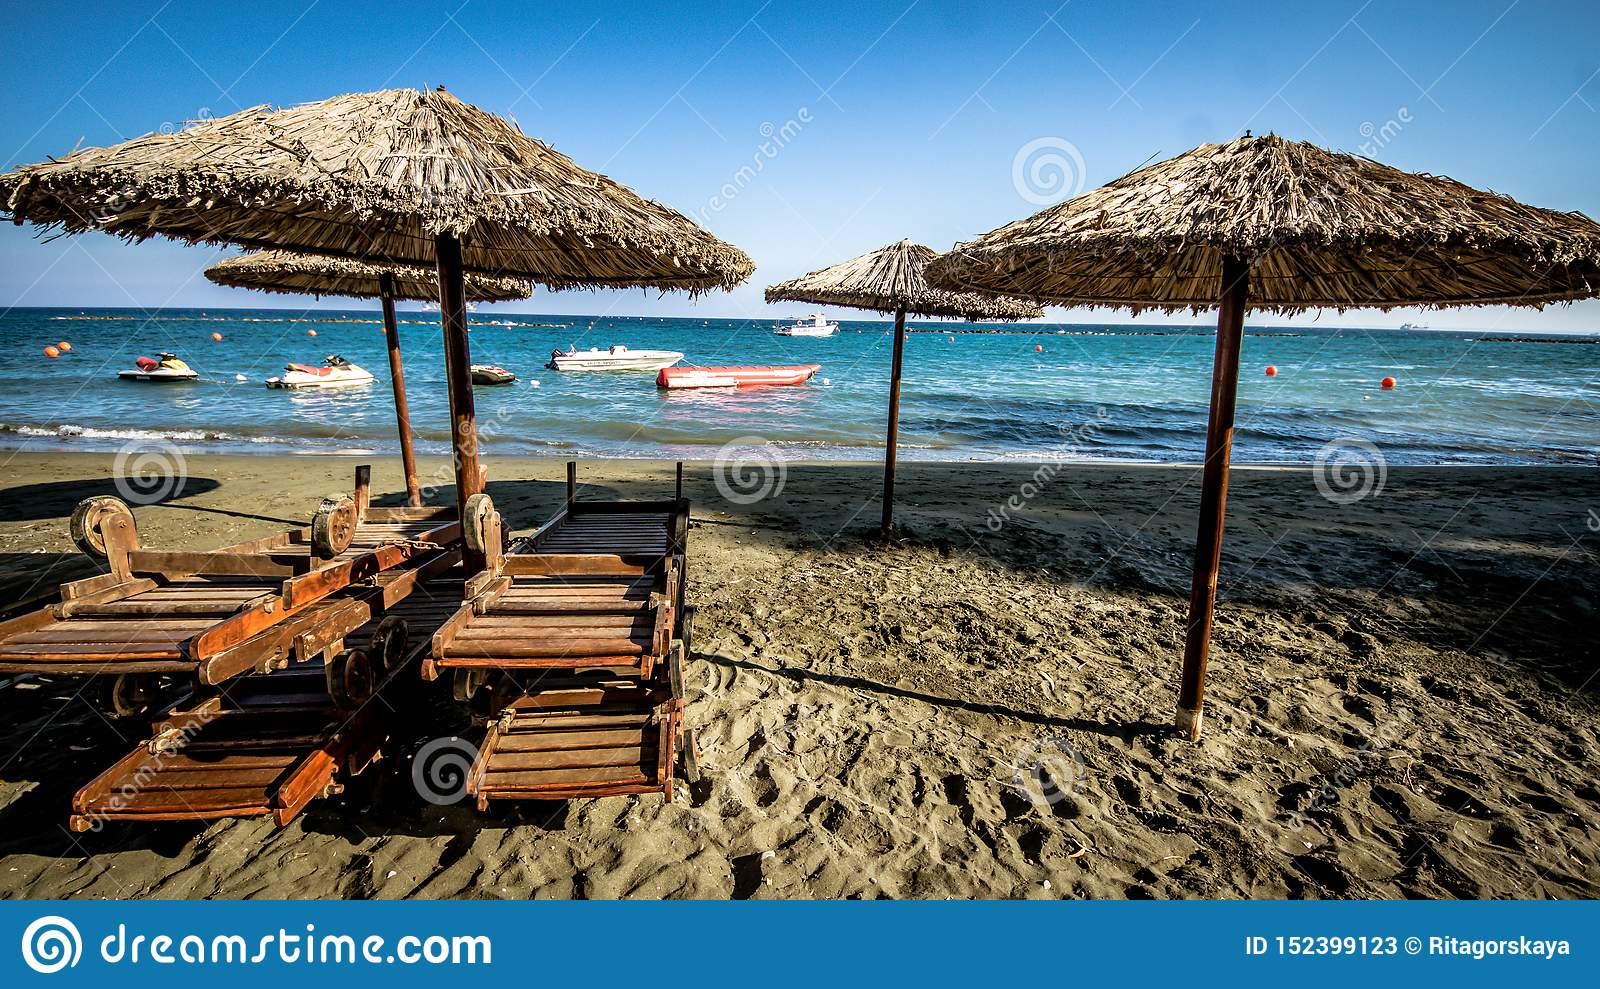 Beautiful beach. Sunbeds with umbrella on the sandy beach near the sea. Summer holiday and vacation concept. Inspirational tropica